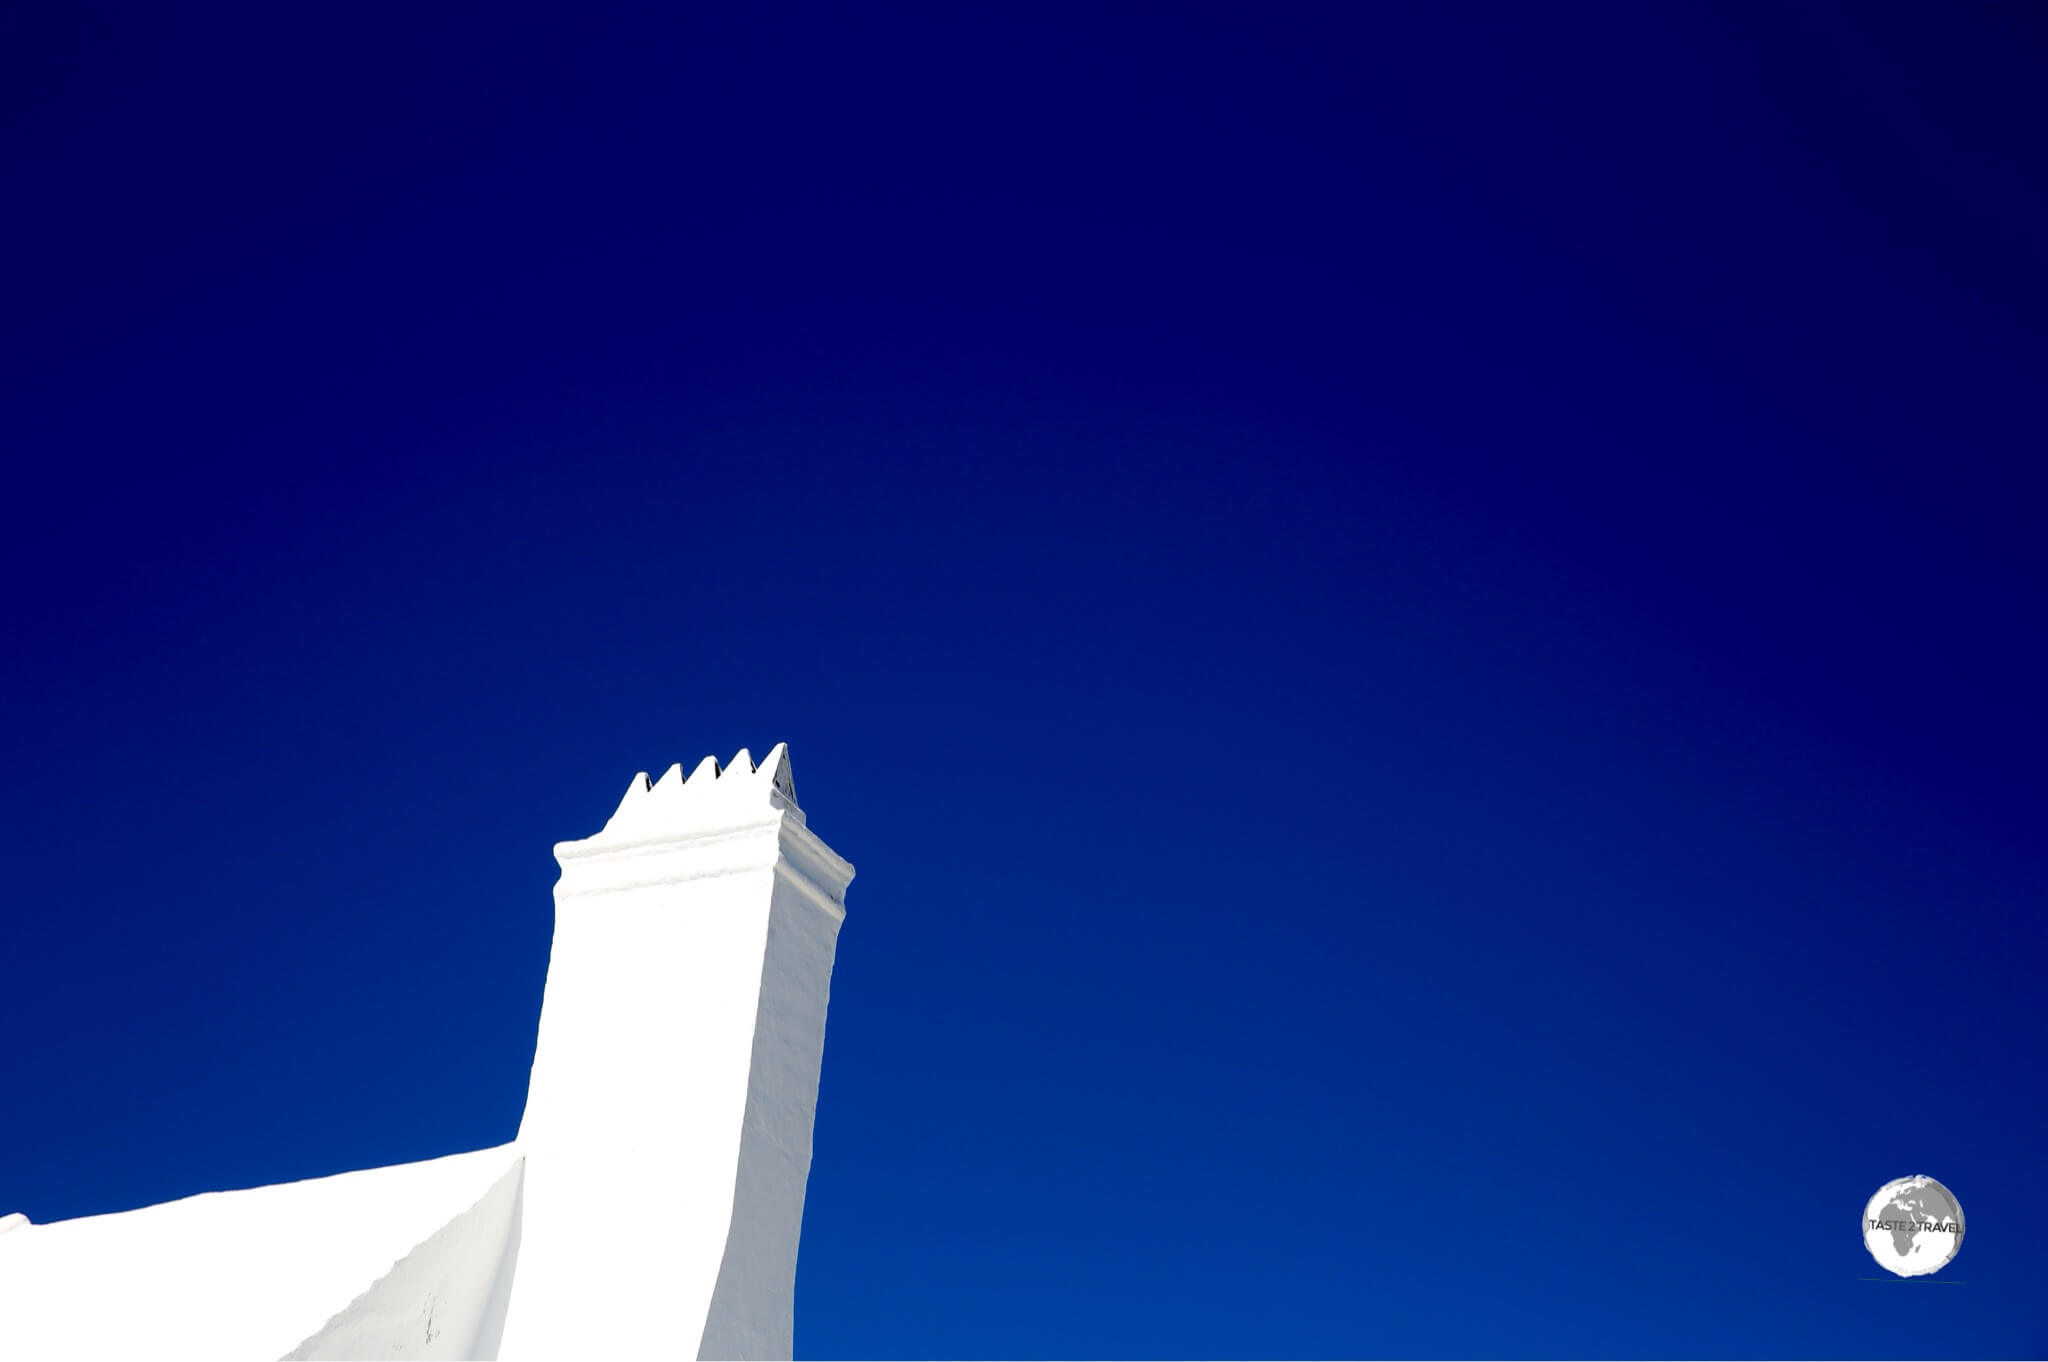 White chimney against a brilliant blue sky.